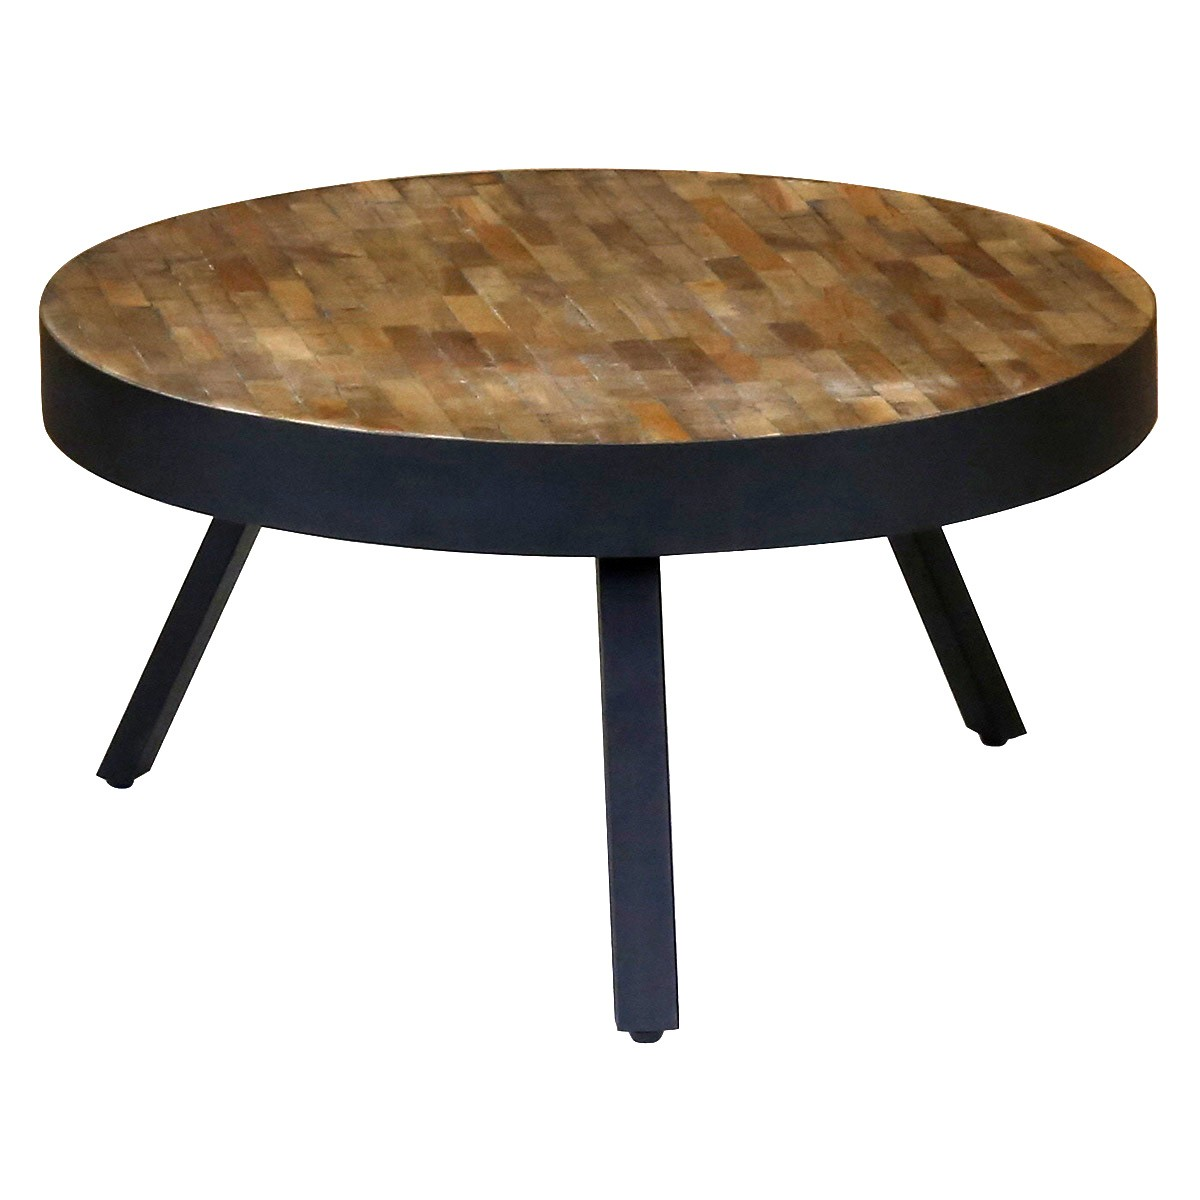 Table basse ronde teck et m tal style industriel et loft for Table basse teck et metal